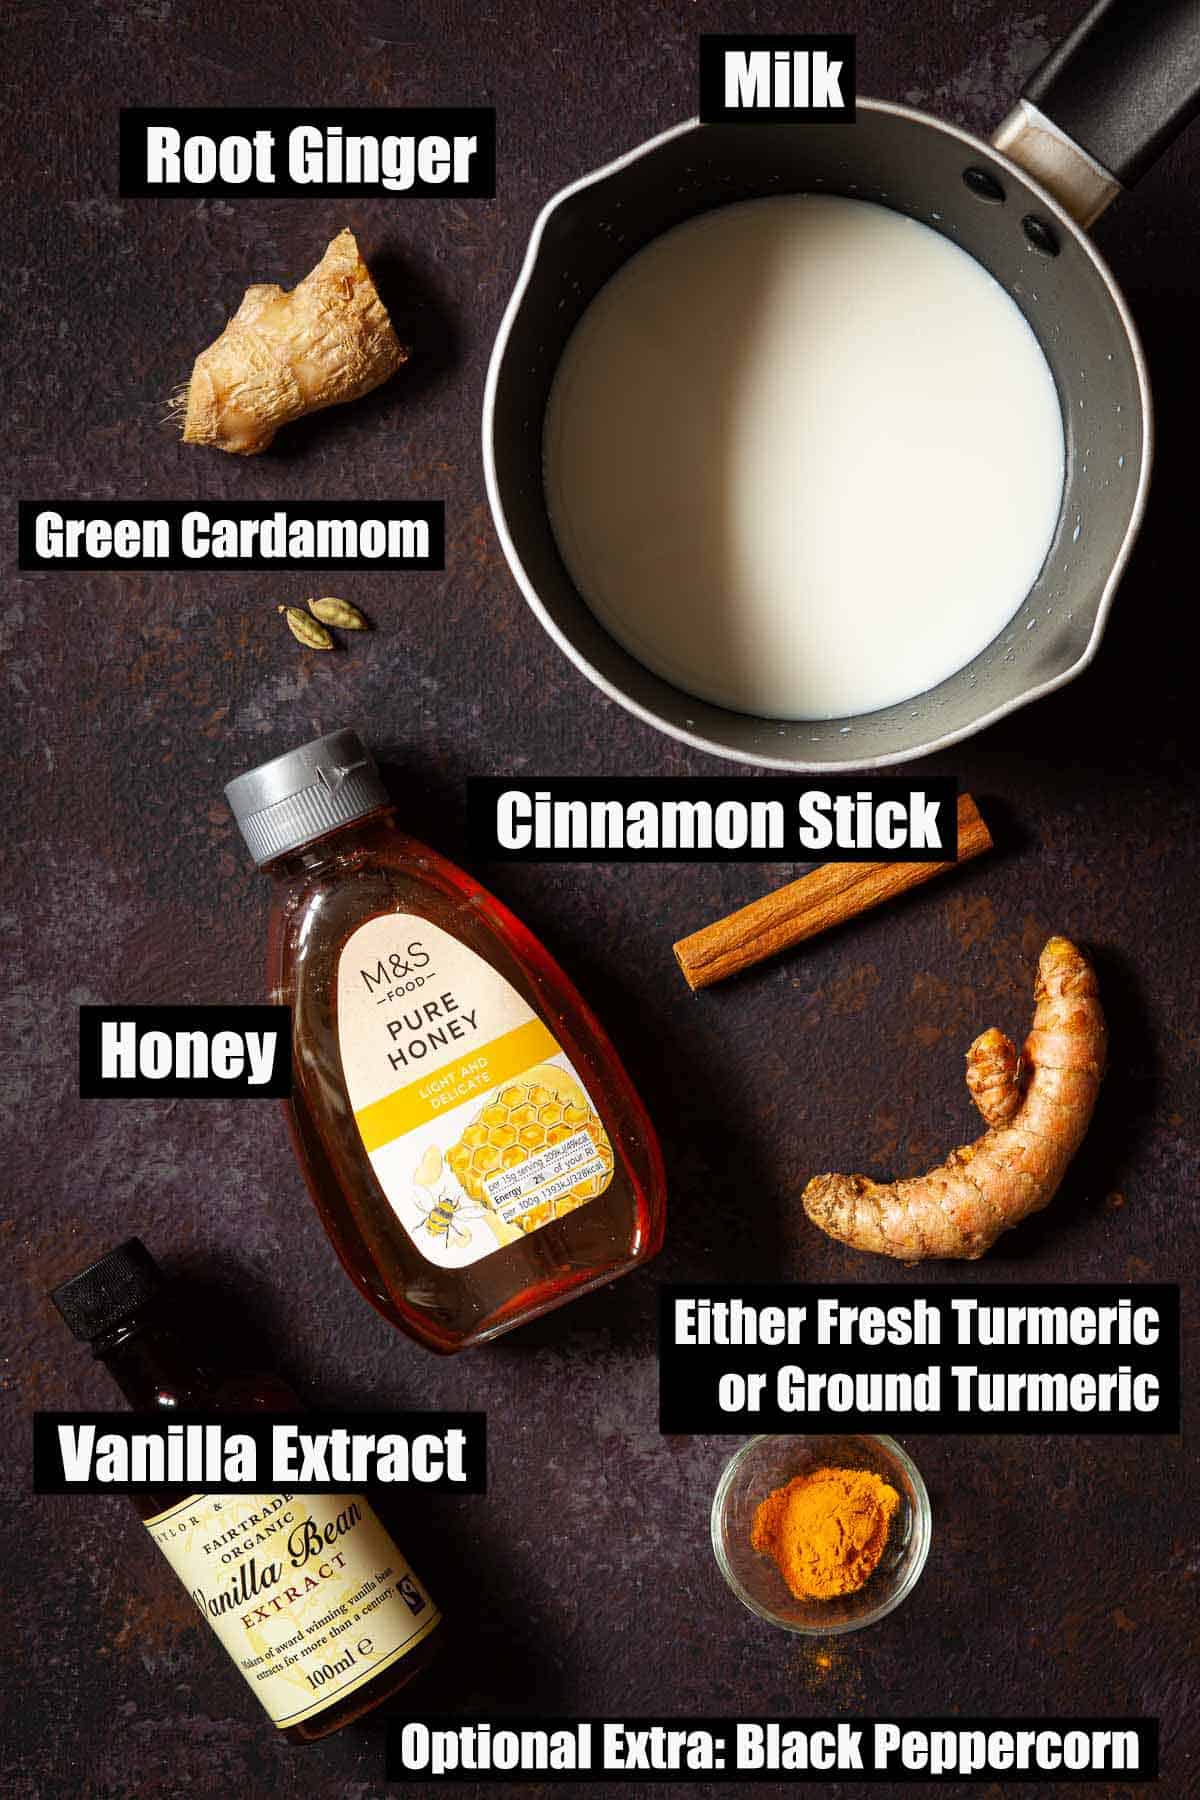 Ingredients for turmeric milk with text overlay